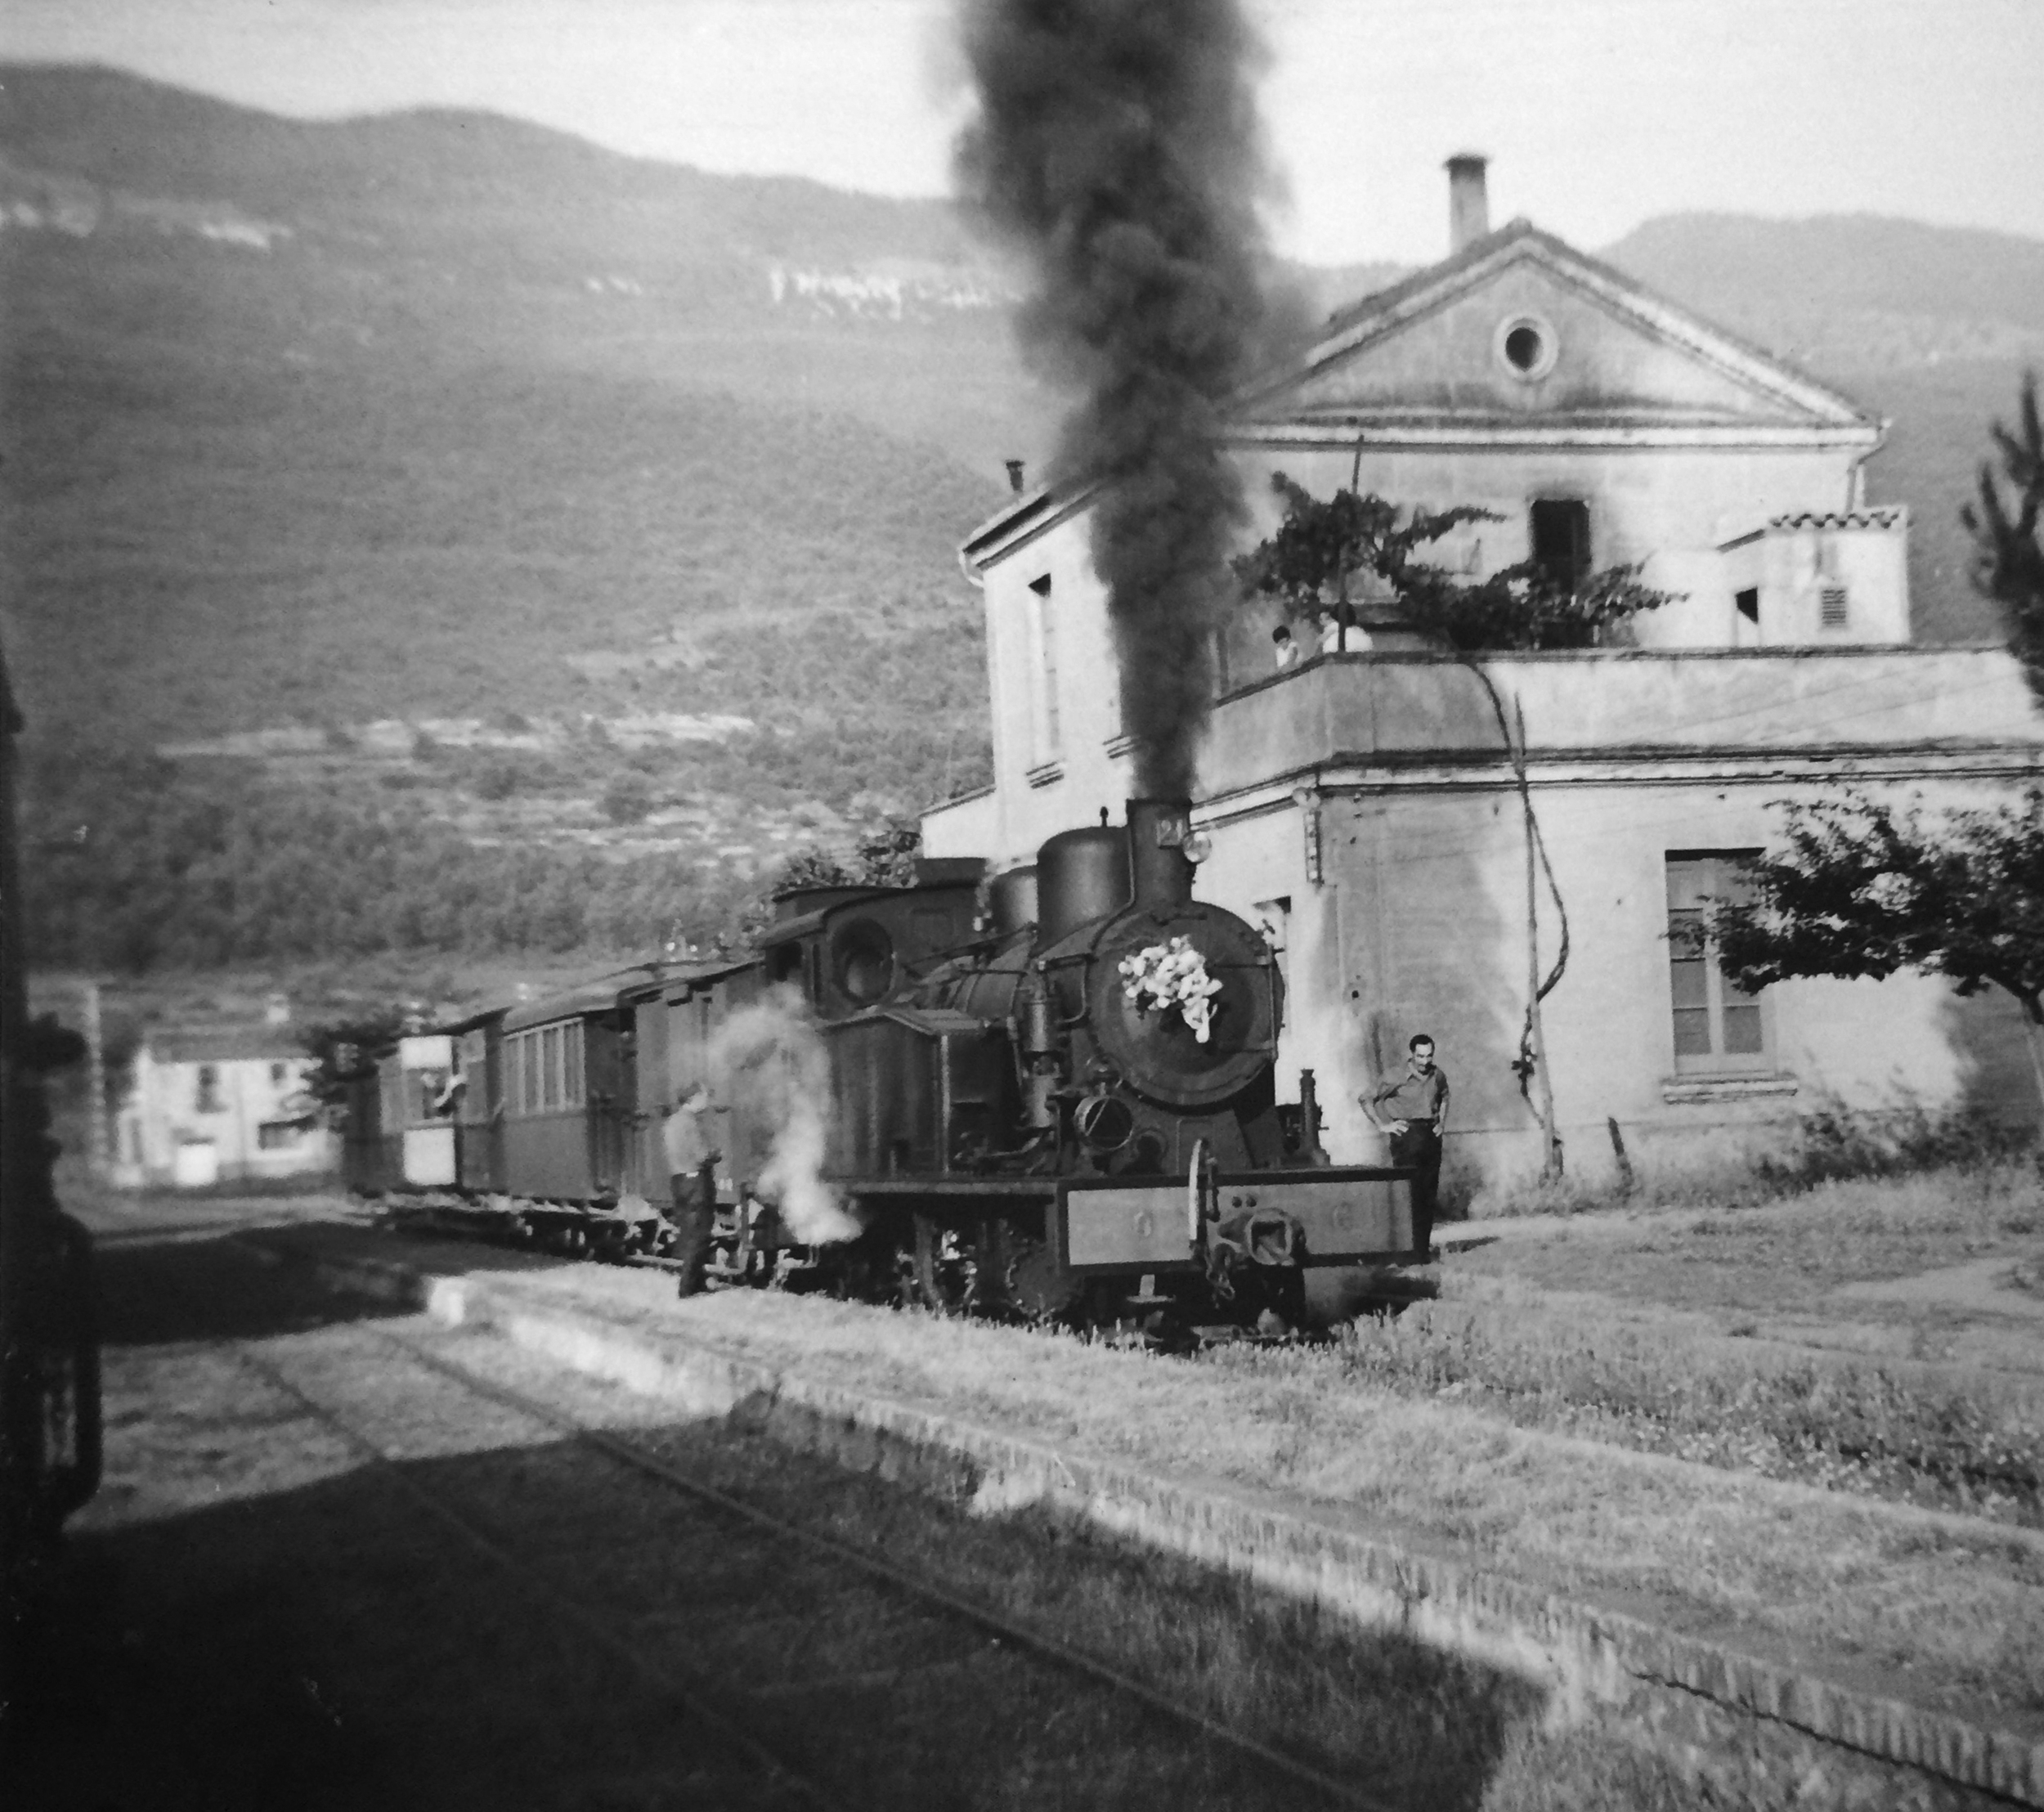 September 1969. The train at Les Planes station—the final run from Girona to Olot.